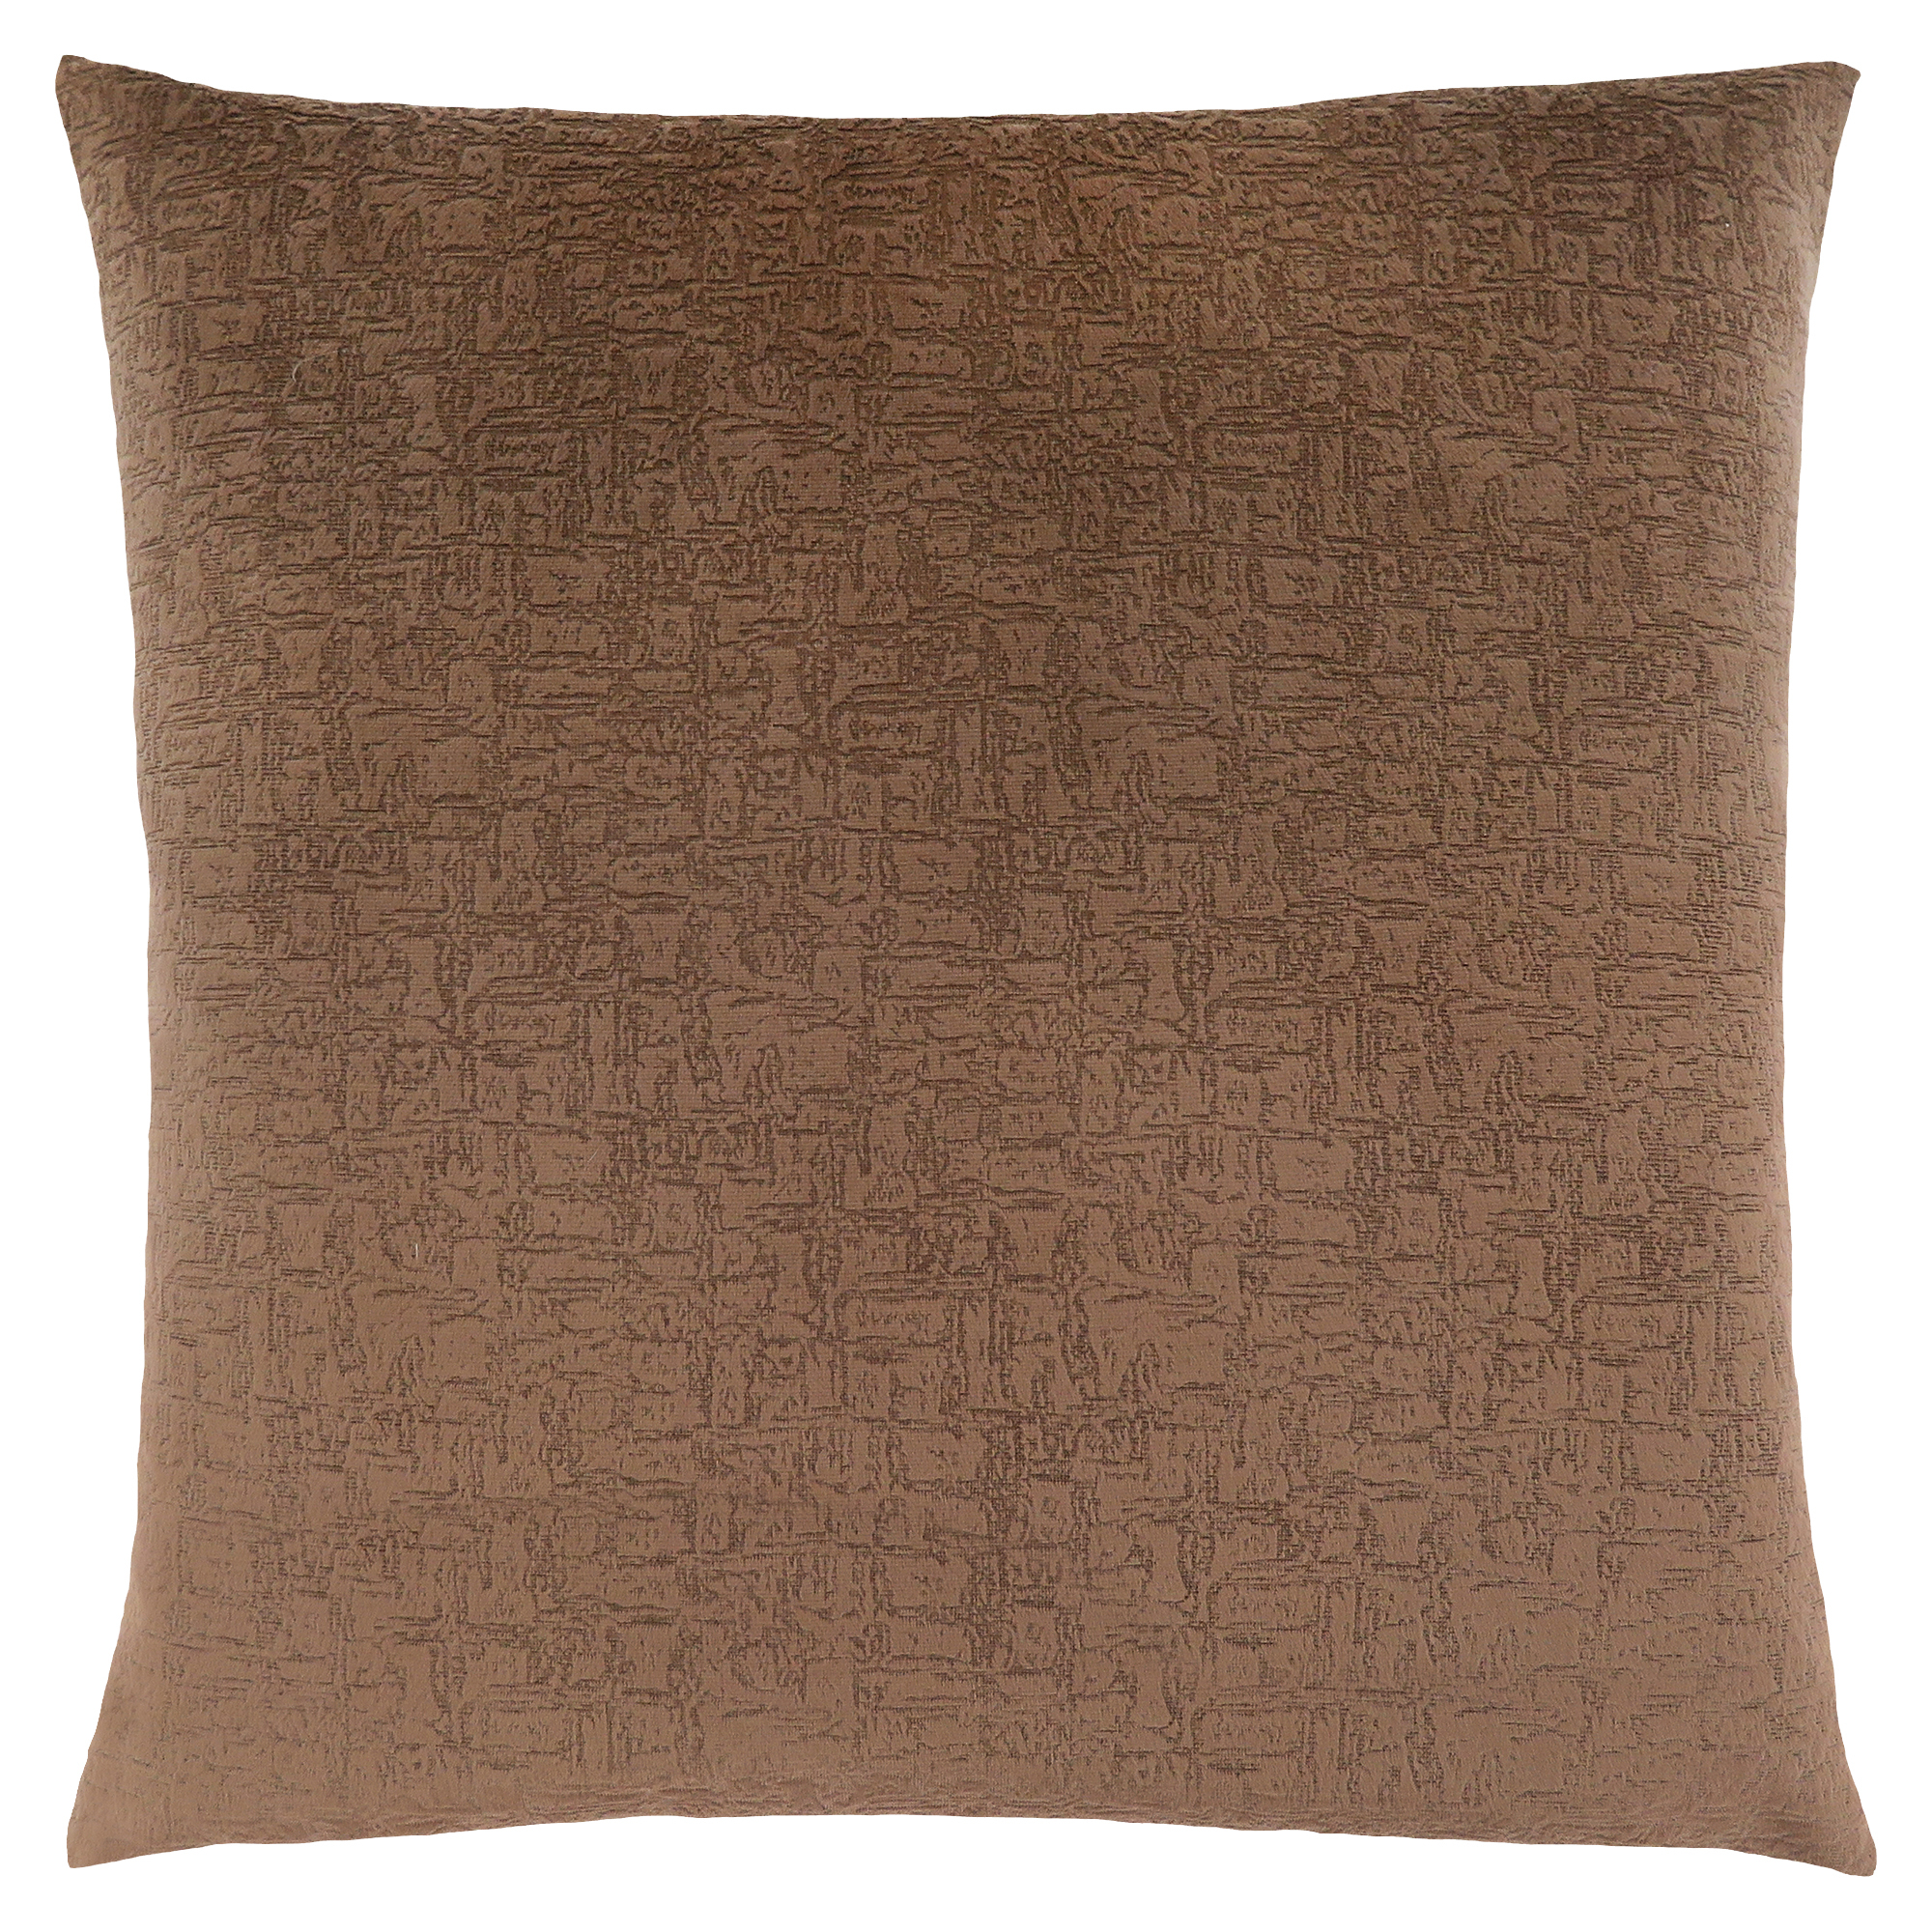 "PILLOW - 18""X 18"" / LIGHT BROWN MOSAIC VELVET / 1PC"